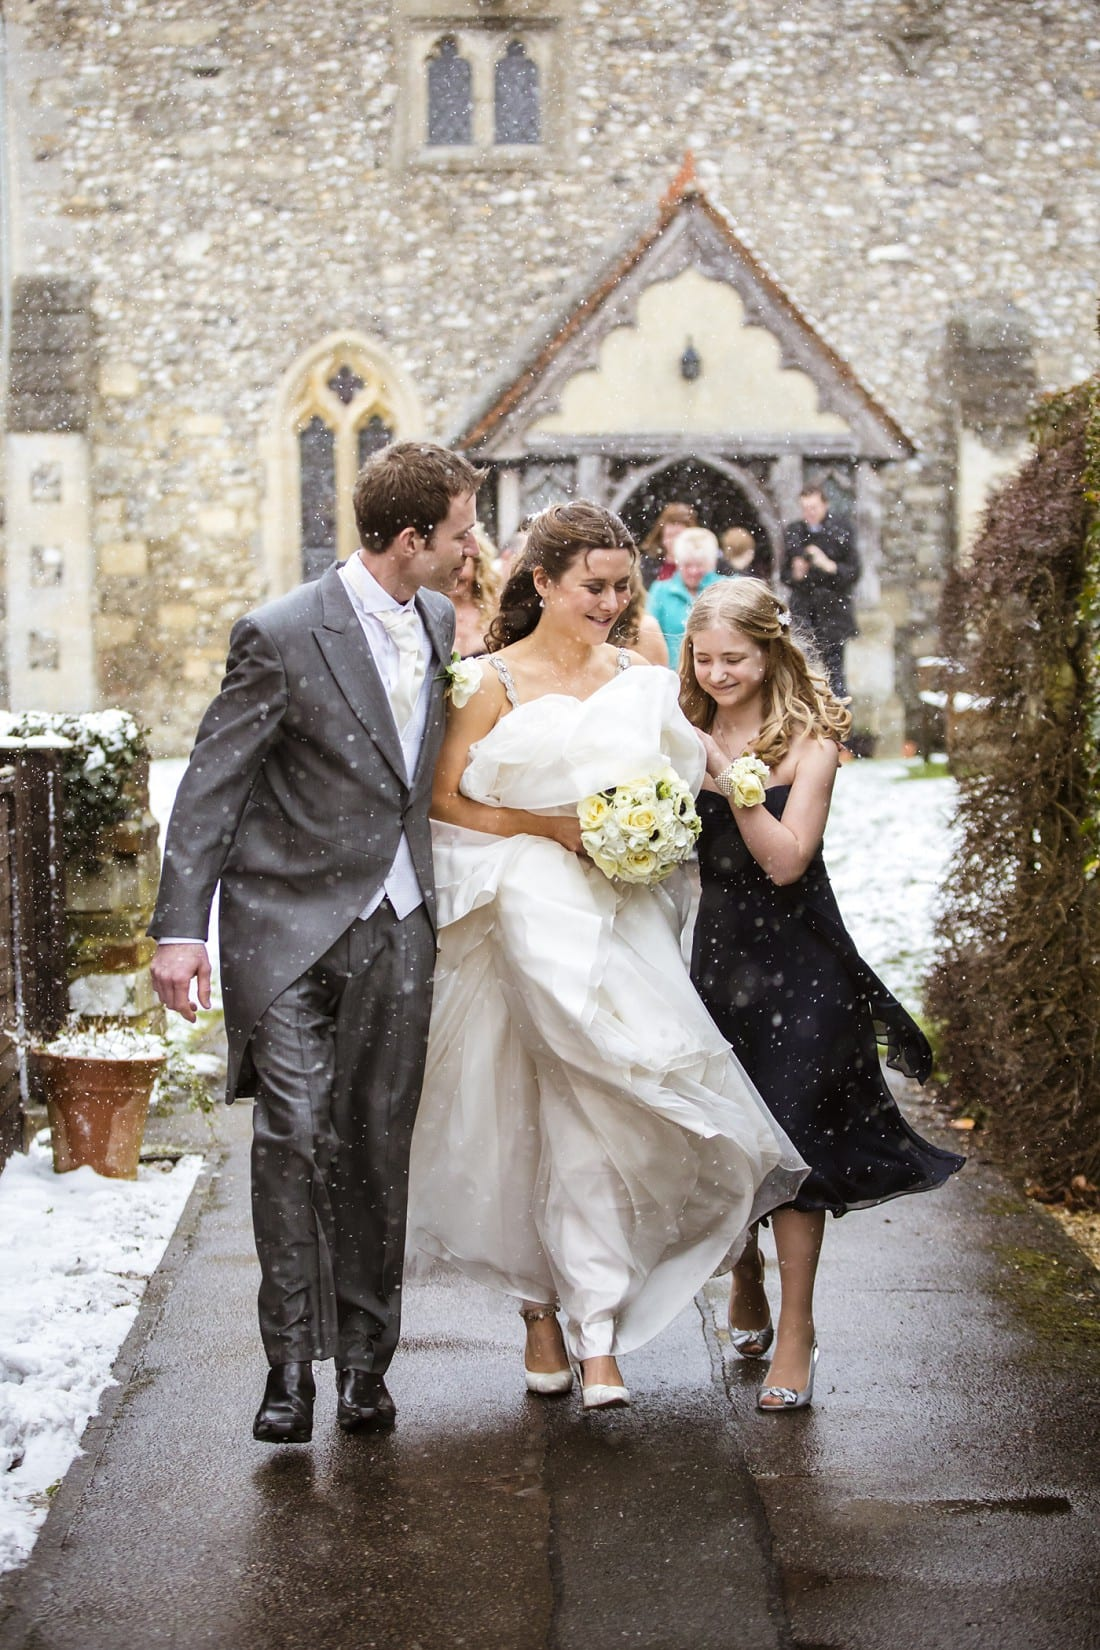 Susanna and Russ_snowy wedding at Buckland village church_0023